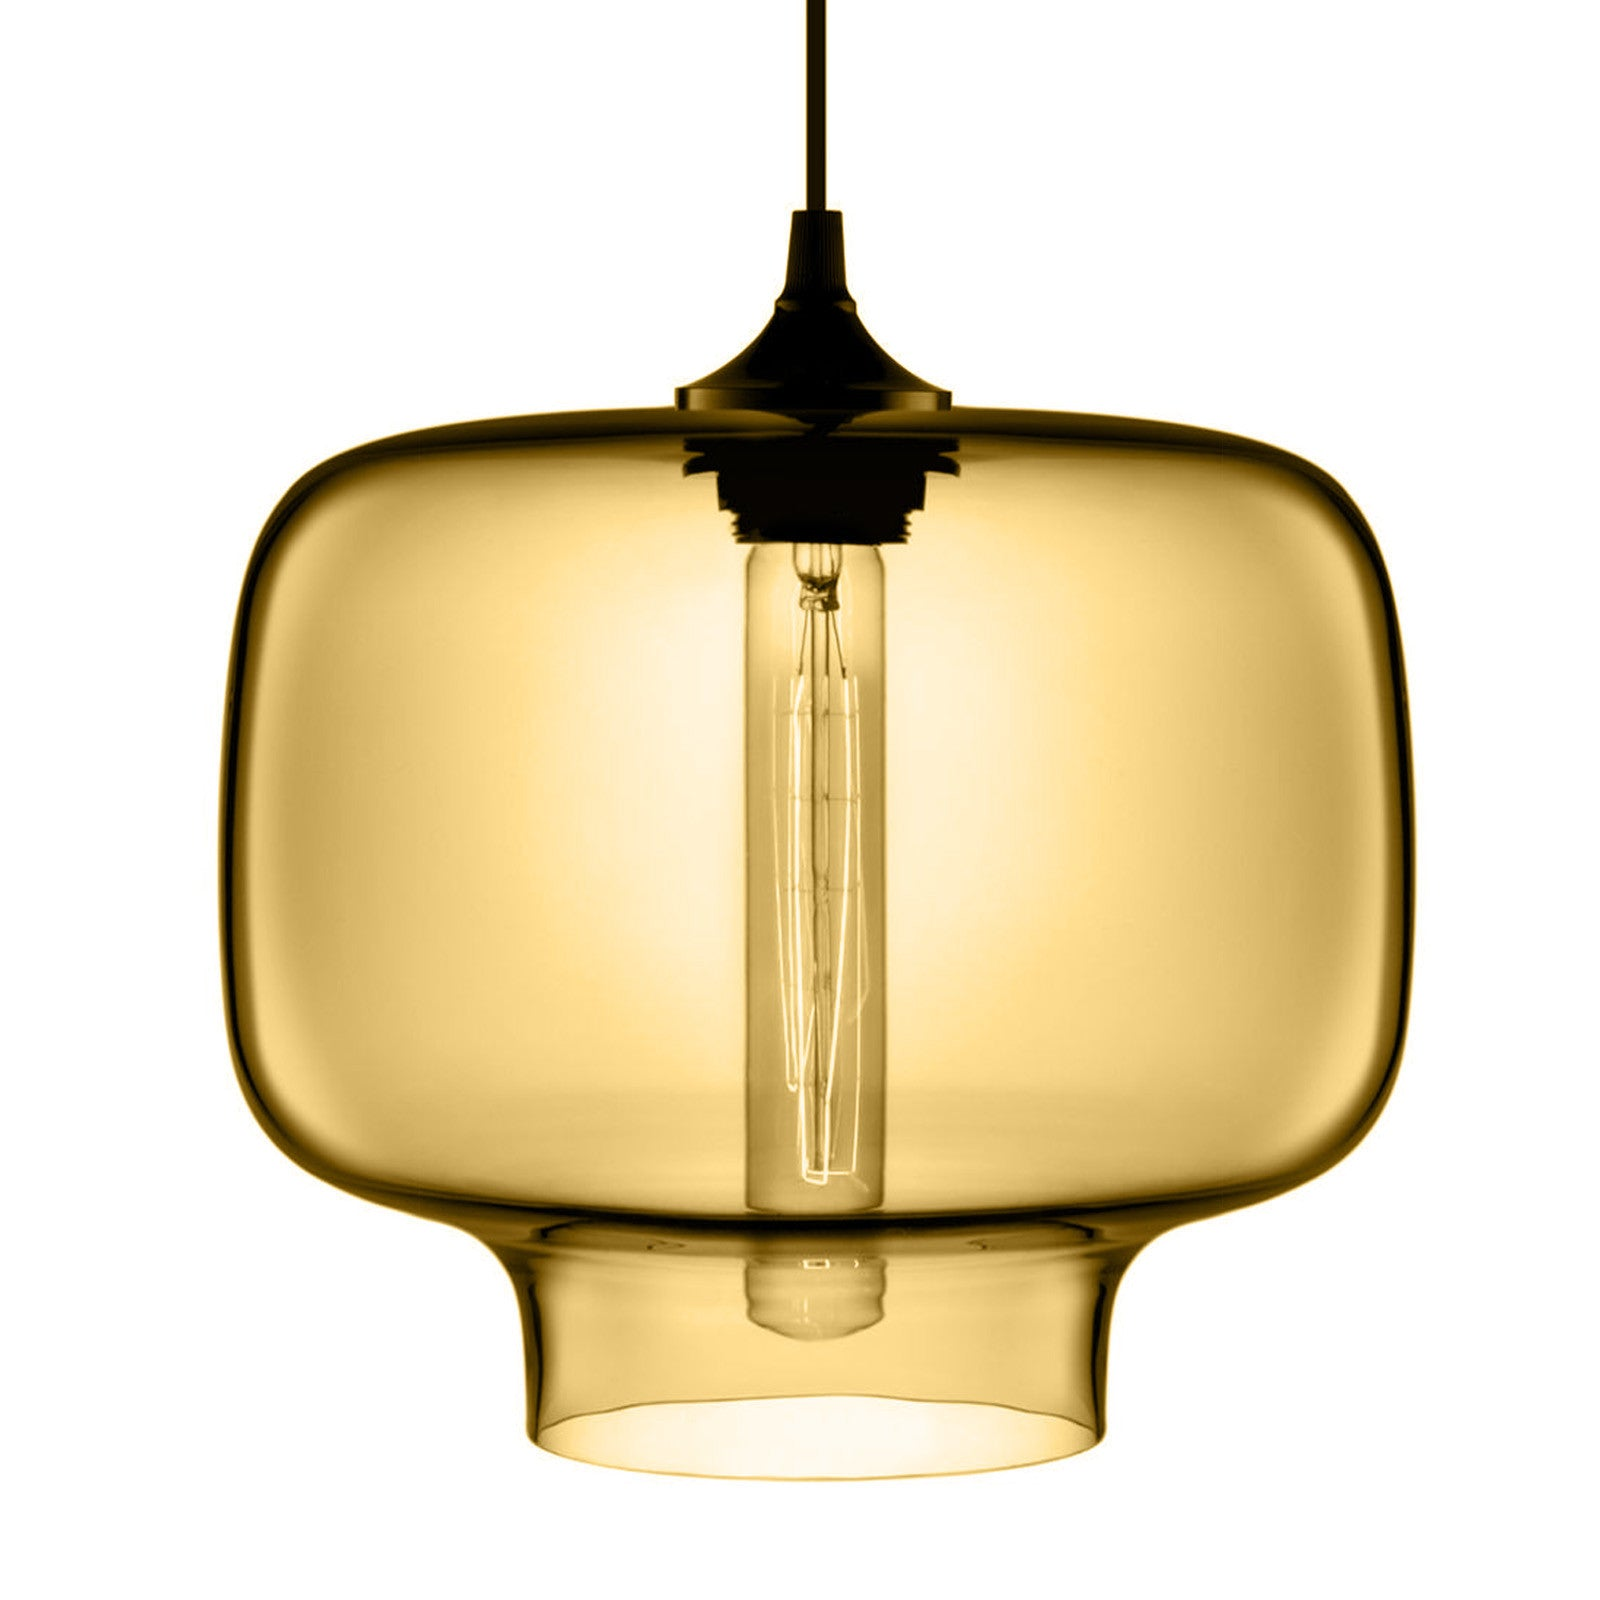 Amber Glass Pendant lamp  CY-DD-JYG-5A -  مصباح معلق من زجاج العنبر - Shop Online Furniture and Home Decor Store in Dubai, UAE at ebarza